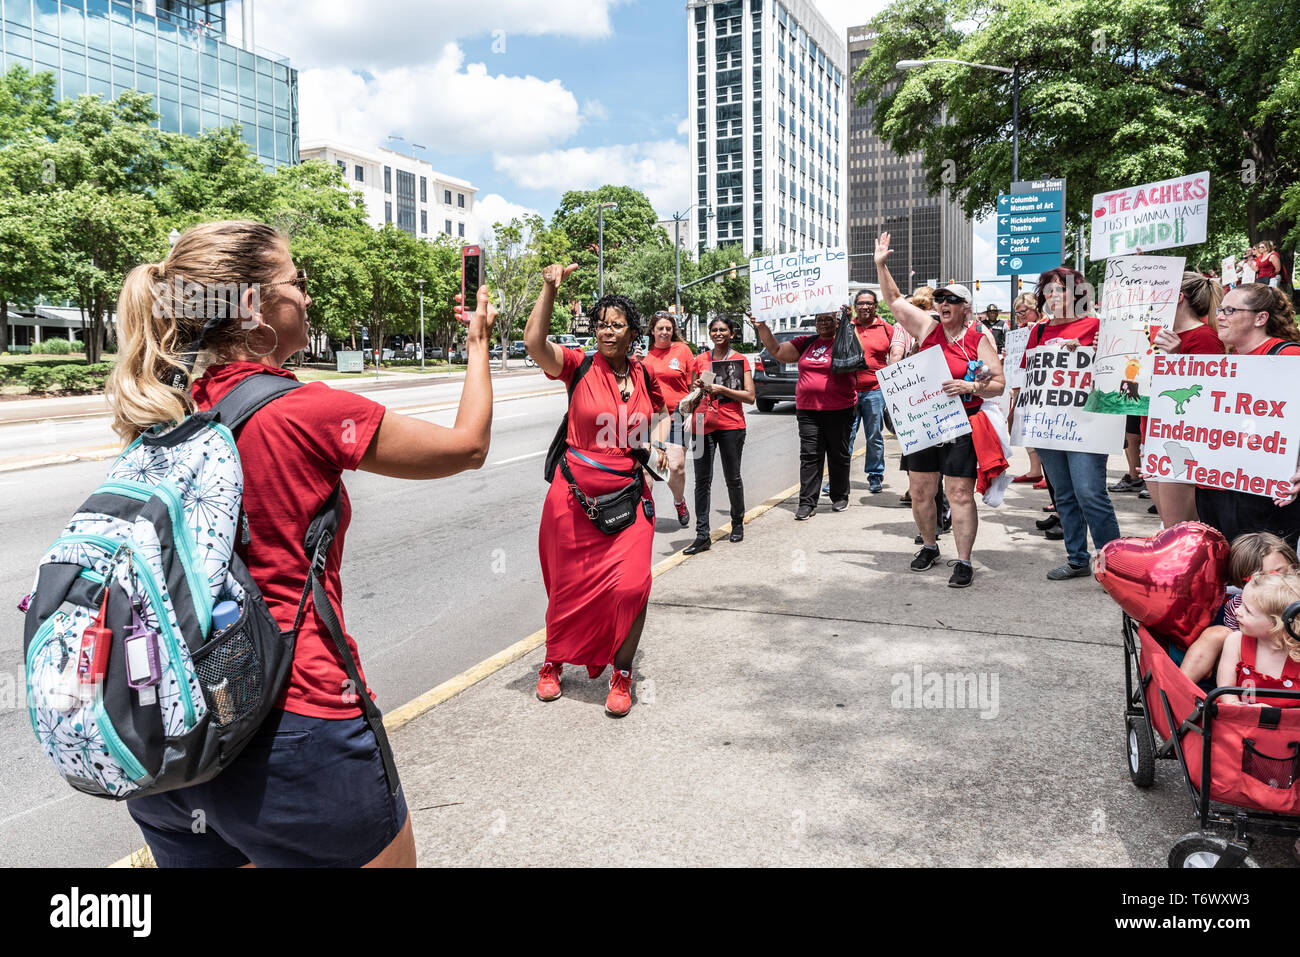 Columbia, South Carolina USA - May 1, 2019: 10,000 teachers from across South Carolina band together to protest poor work conditions in S.C. schools. - Stock Image